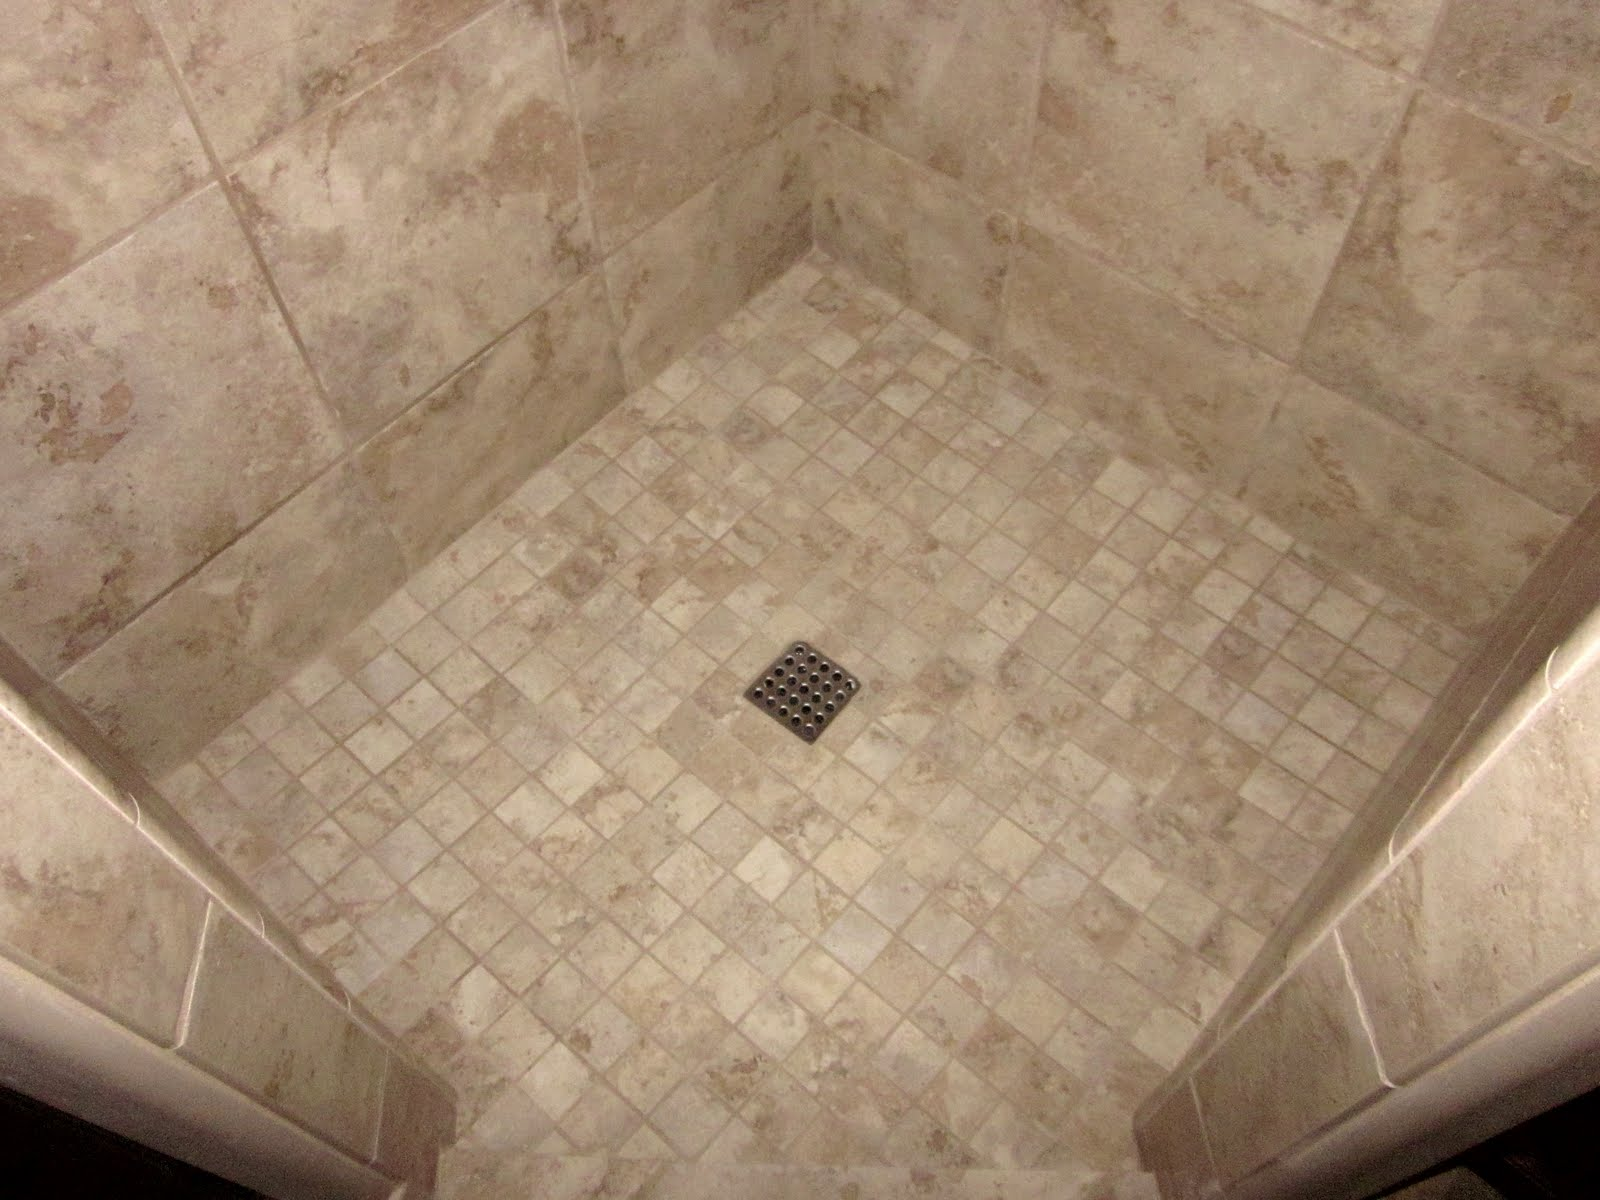 2x2 Mosaic Tile Shower Floor